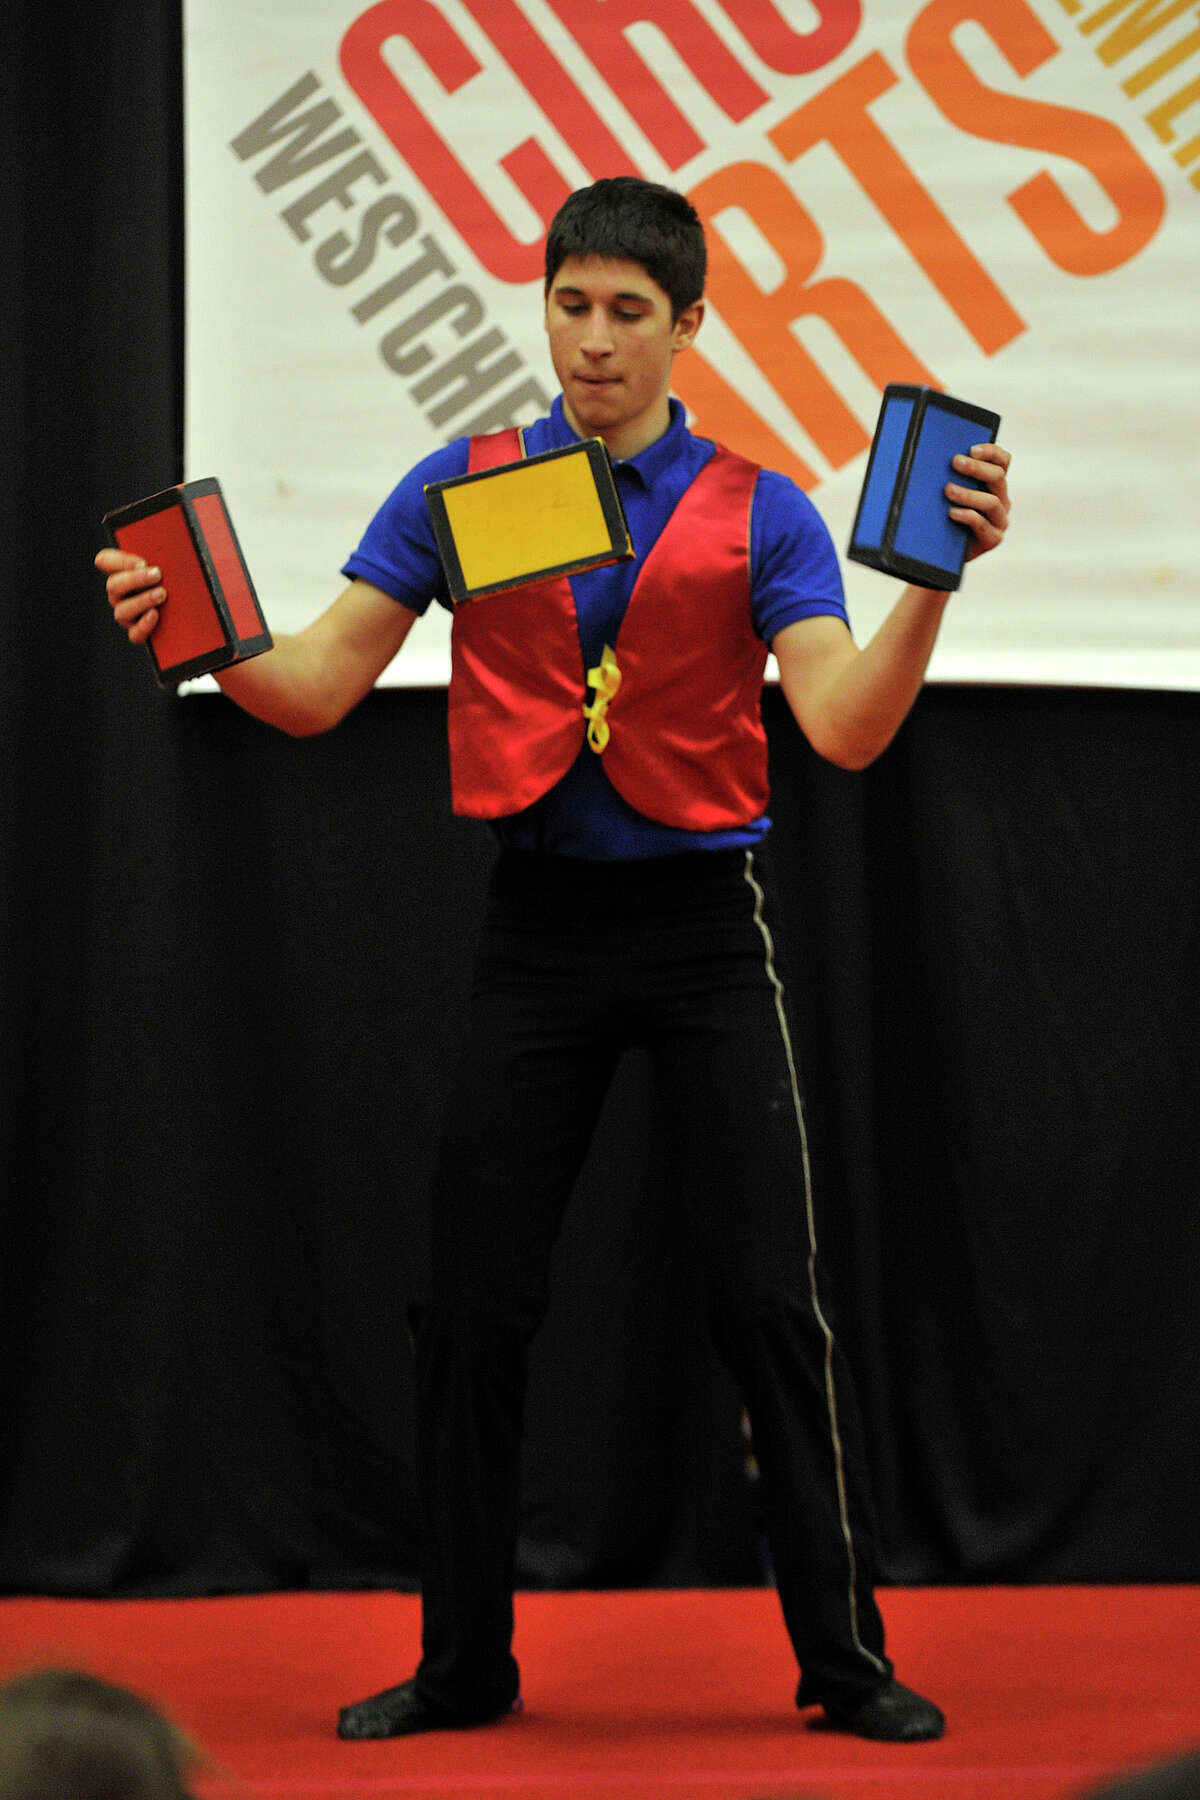 Jonathan Blau, with Westchester Circus Arts Center, performs a juggling routine during the 22nd annual JCC Purim Carnival: Under the Big Top at the Jewish Community Center in Stamford, Conn., on Sunday, March 9, 2014.